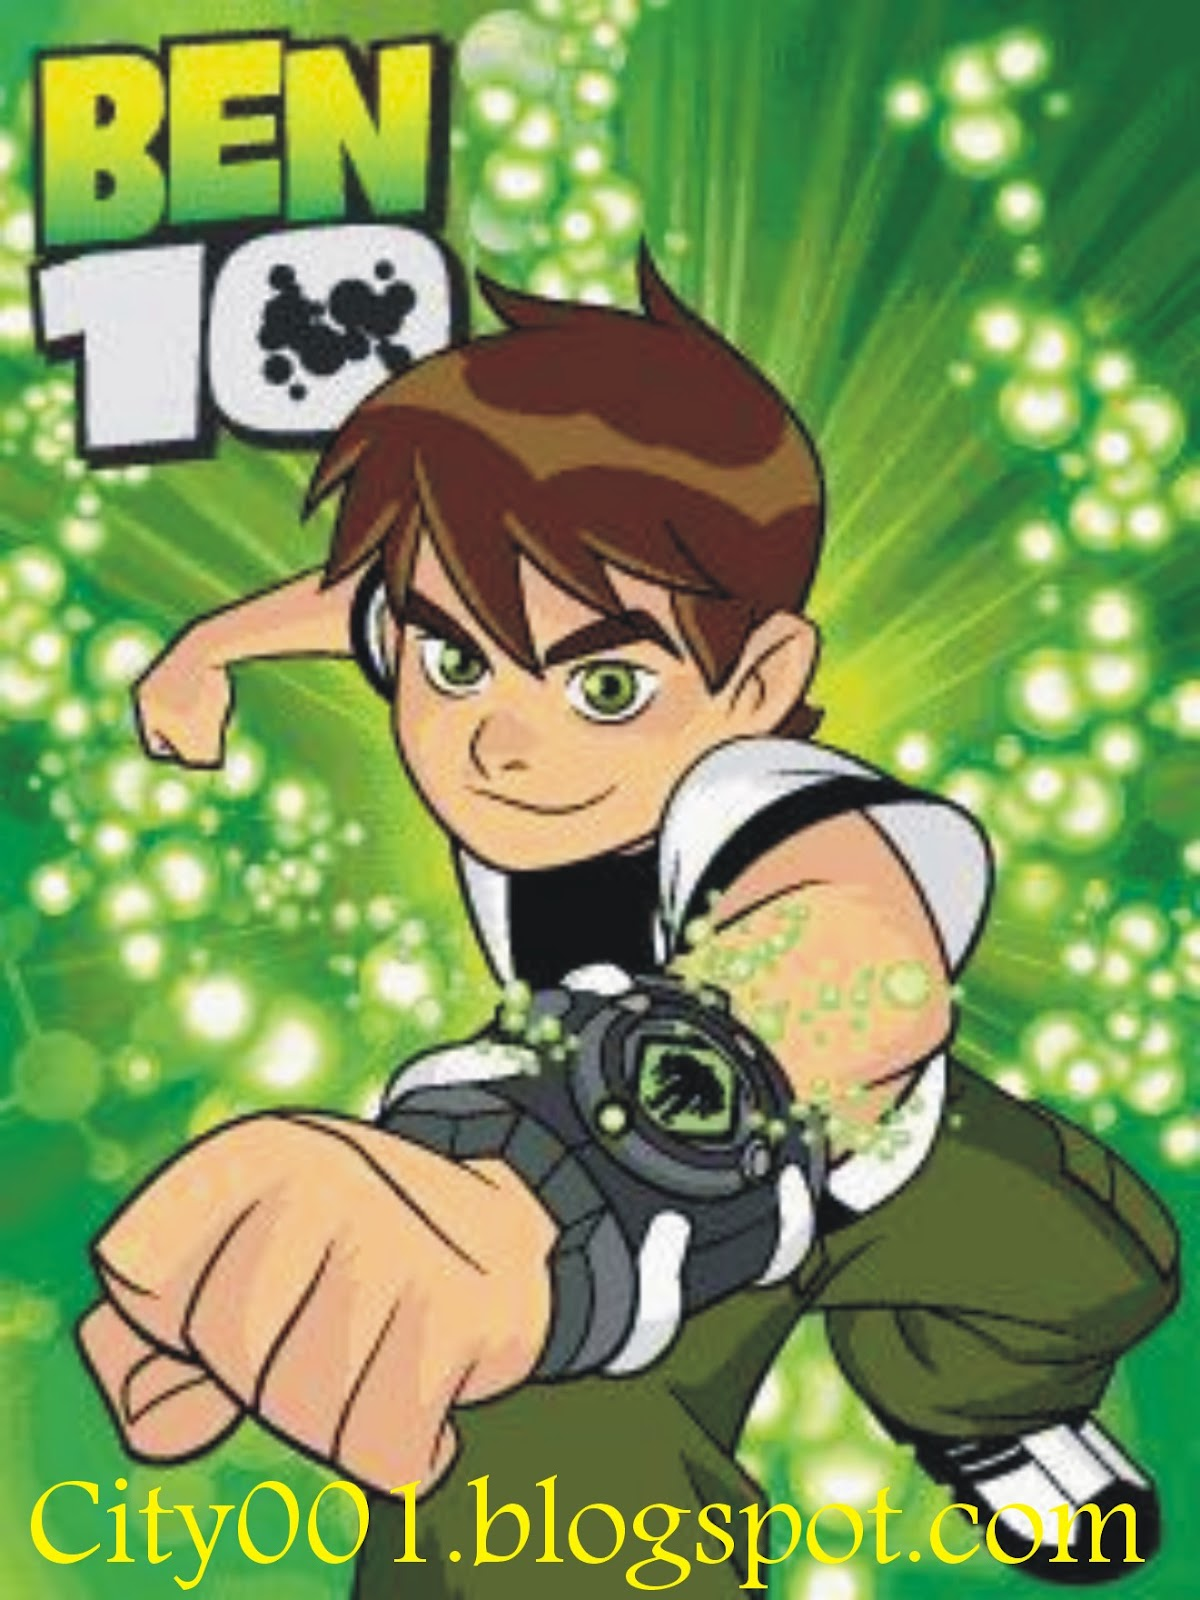 Free games and software ben 10 games 7 in 1 pc game full version free download - Ben 10 images ...